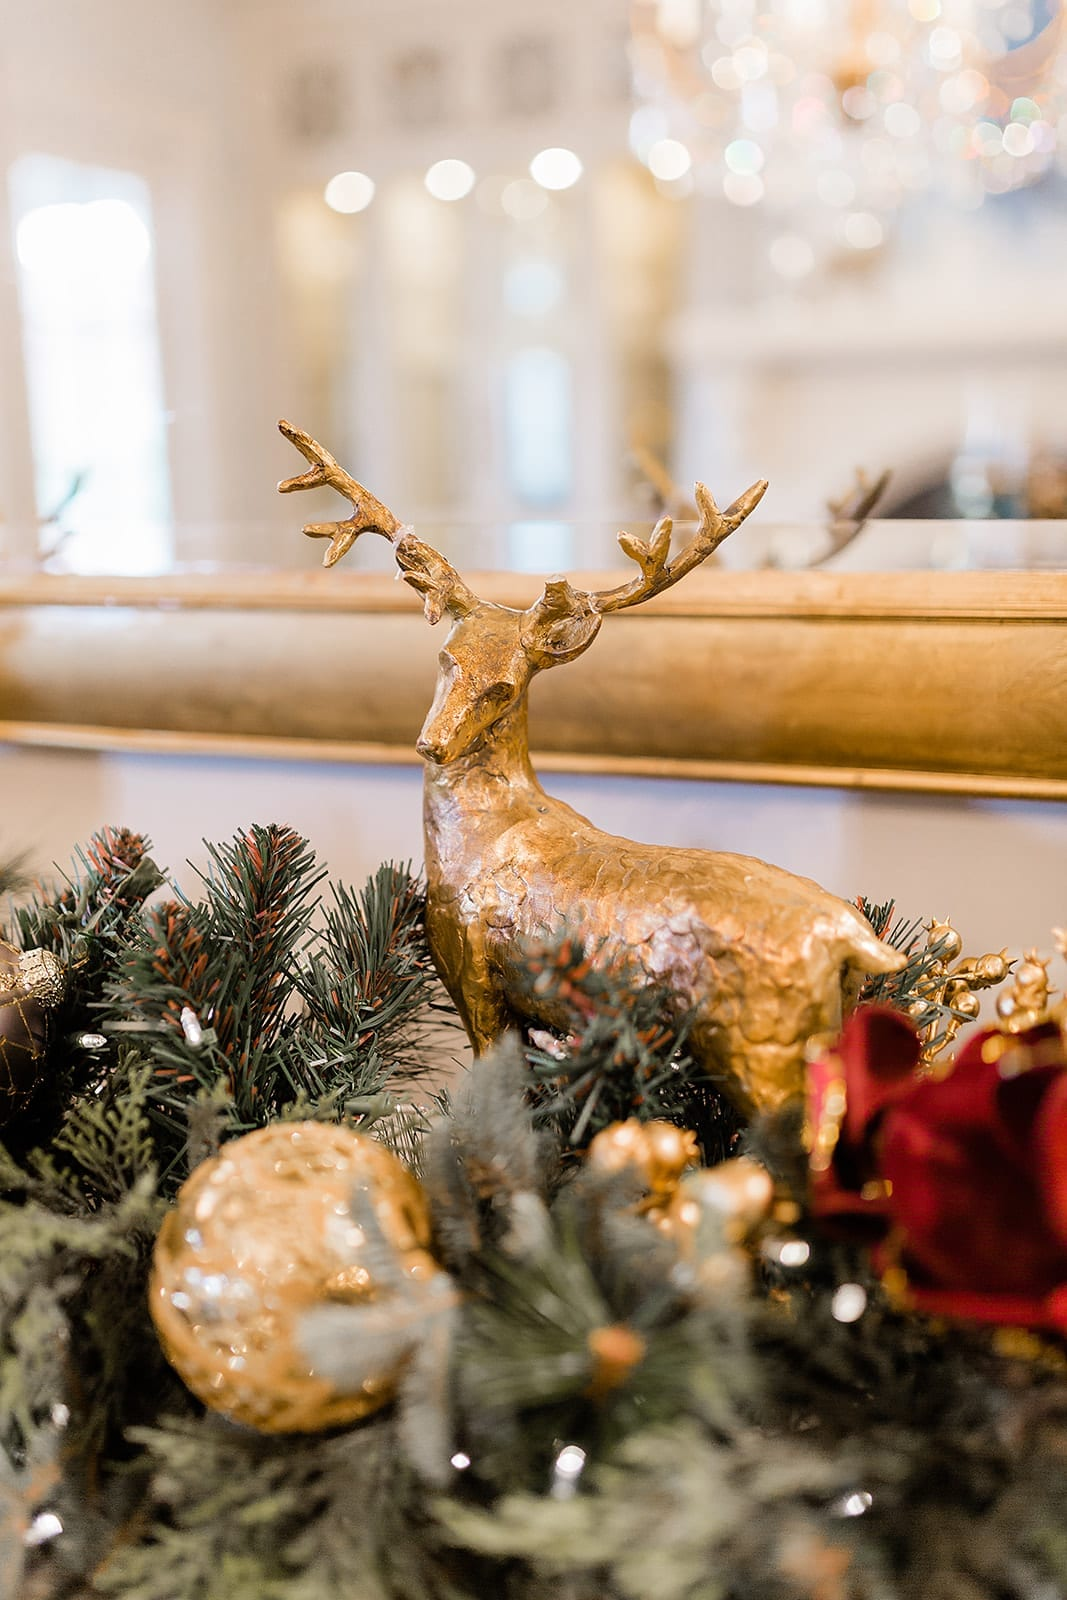 Use gold and dark red for buffet decorations for christmas. Accents of Christmas reindeer and deep colors.